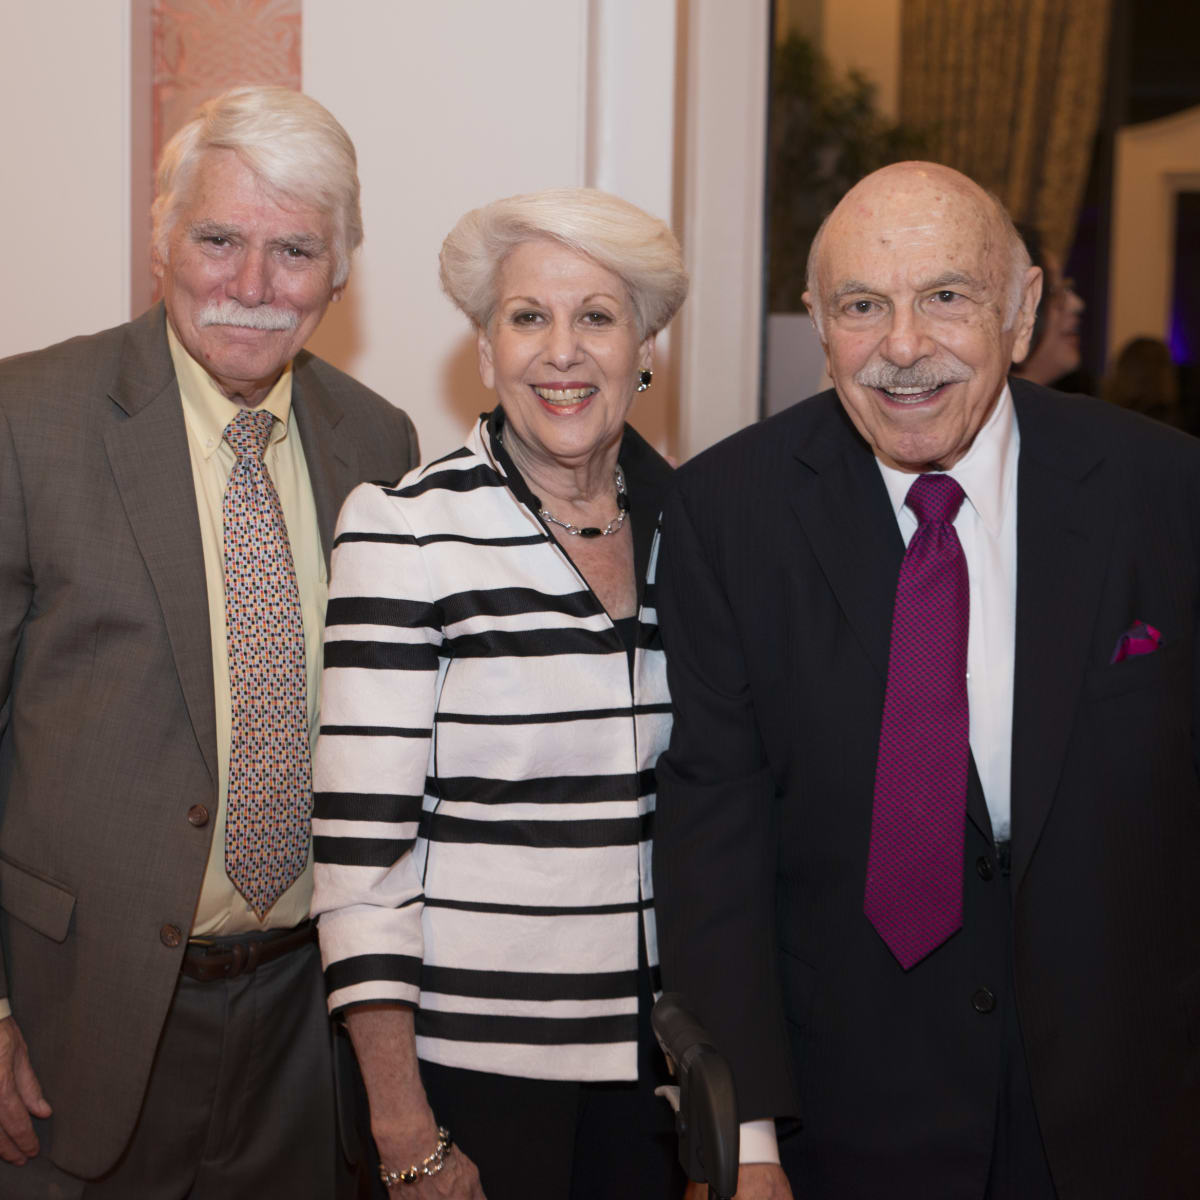 News, shelby, Scenic Houston dinner, Oct. 3015, Andy Icken, Lorraine Wulfe, Ed Wulfe